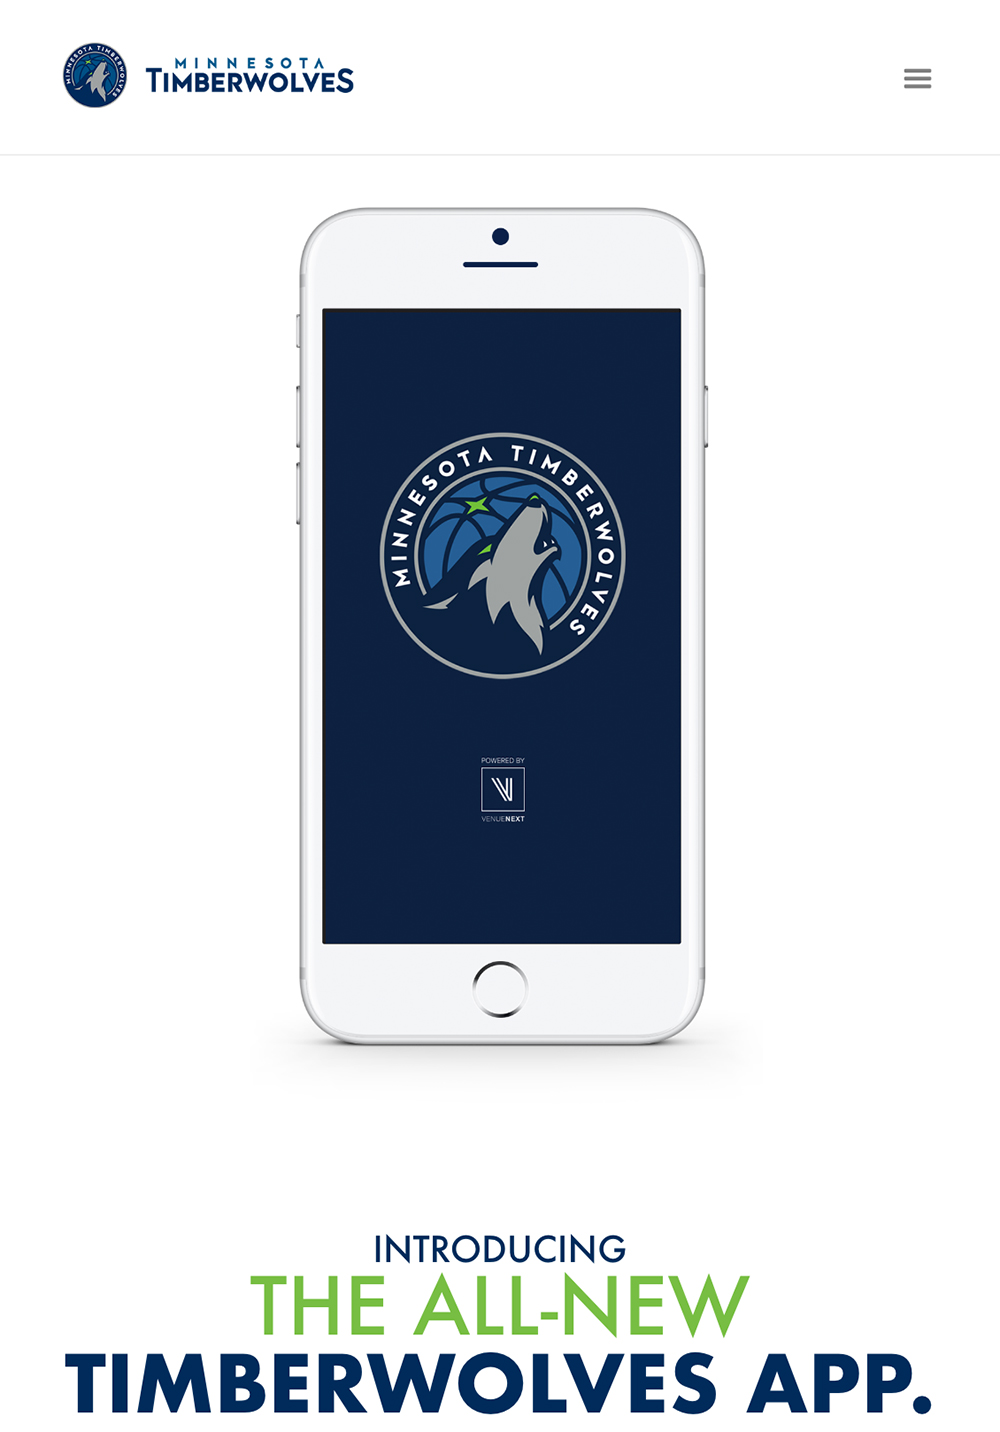 Timberwolves Mobile App, Hero Spot, Mobile View